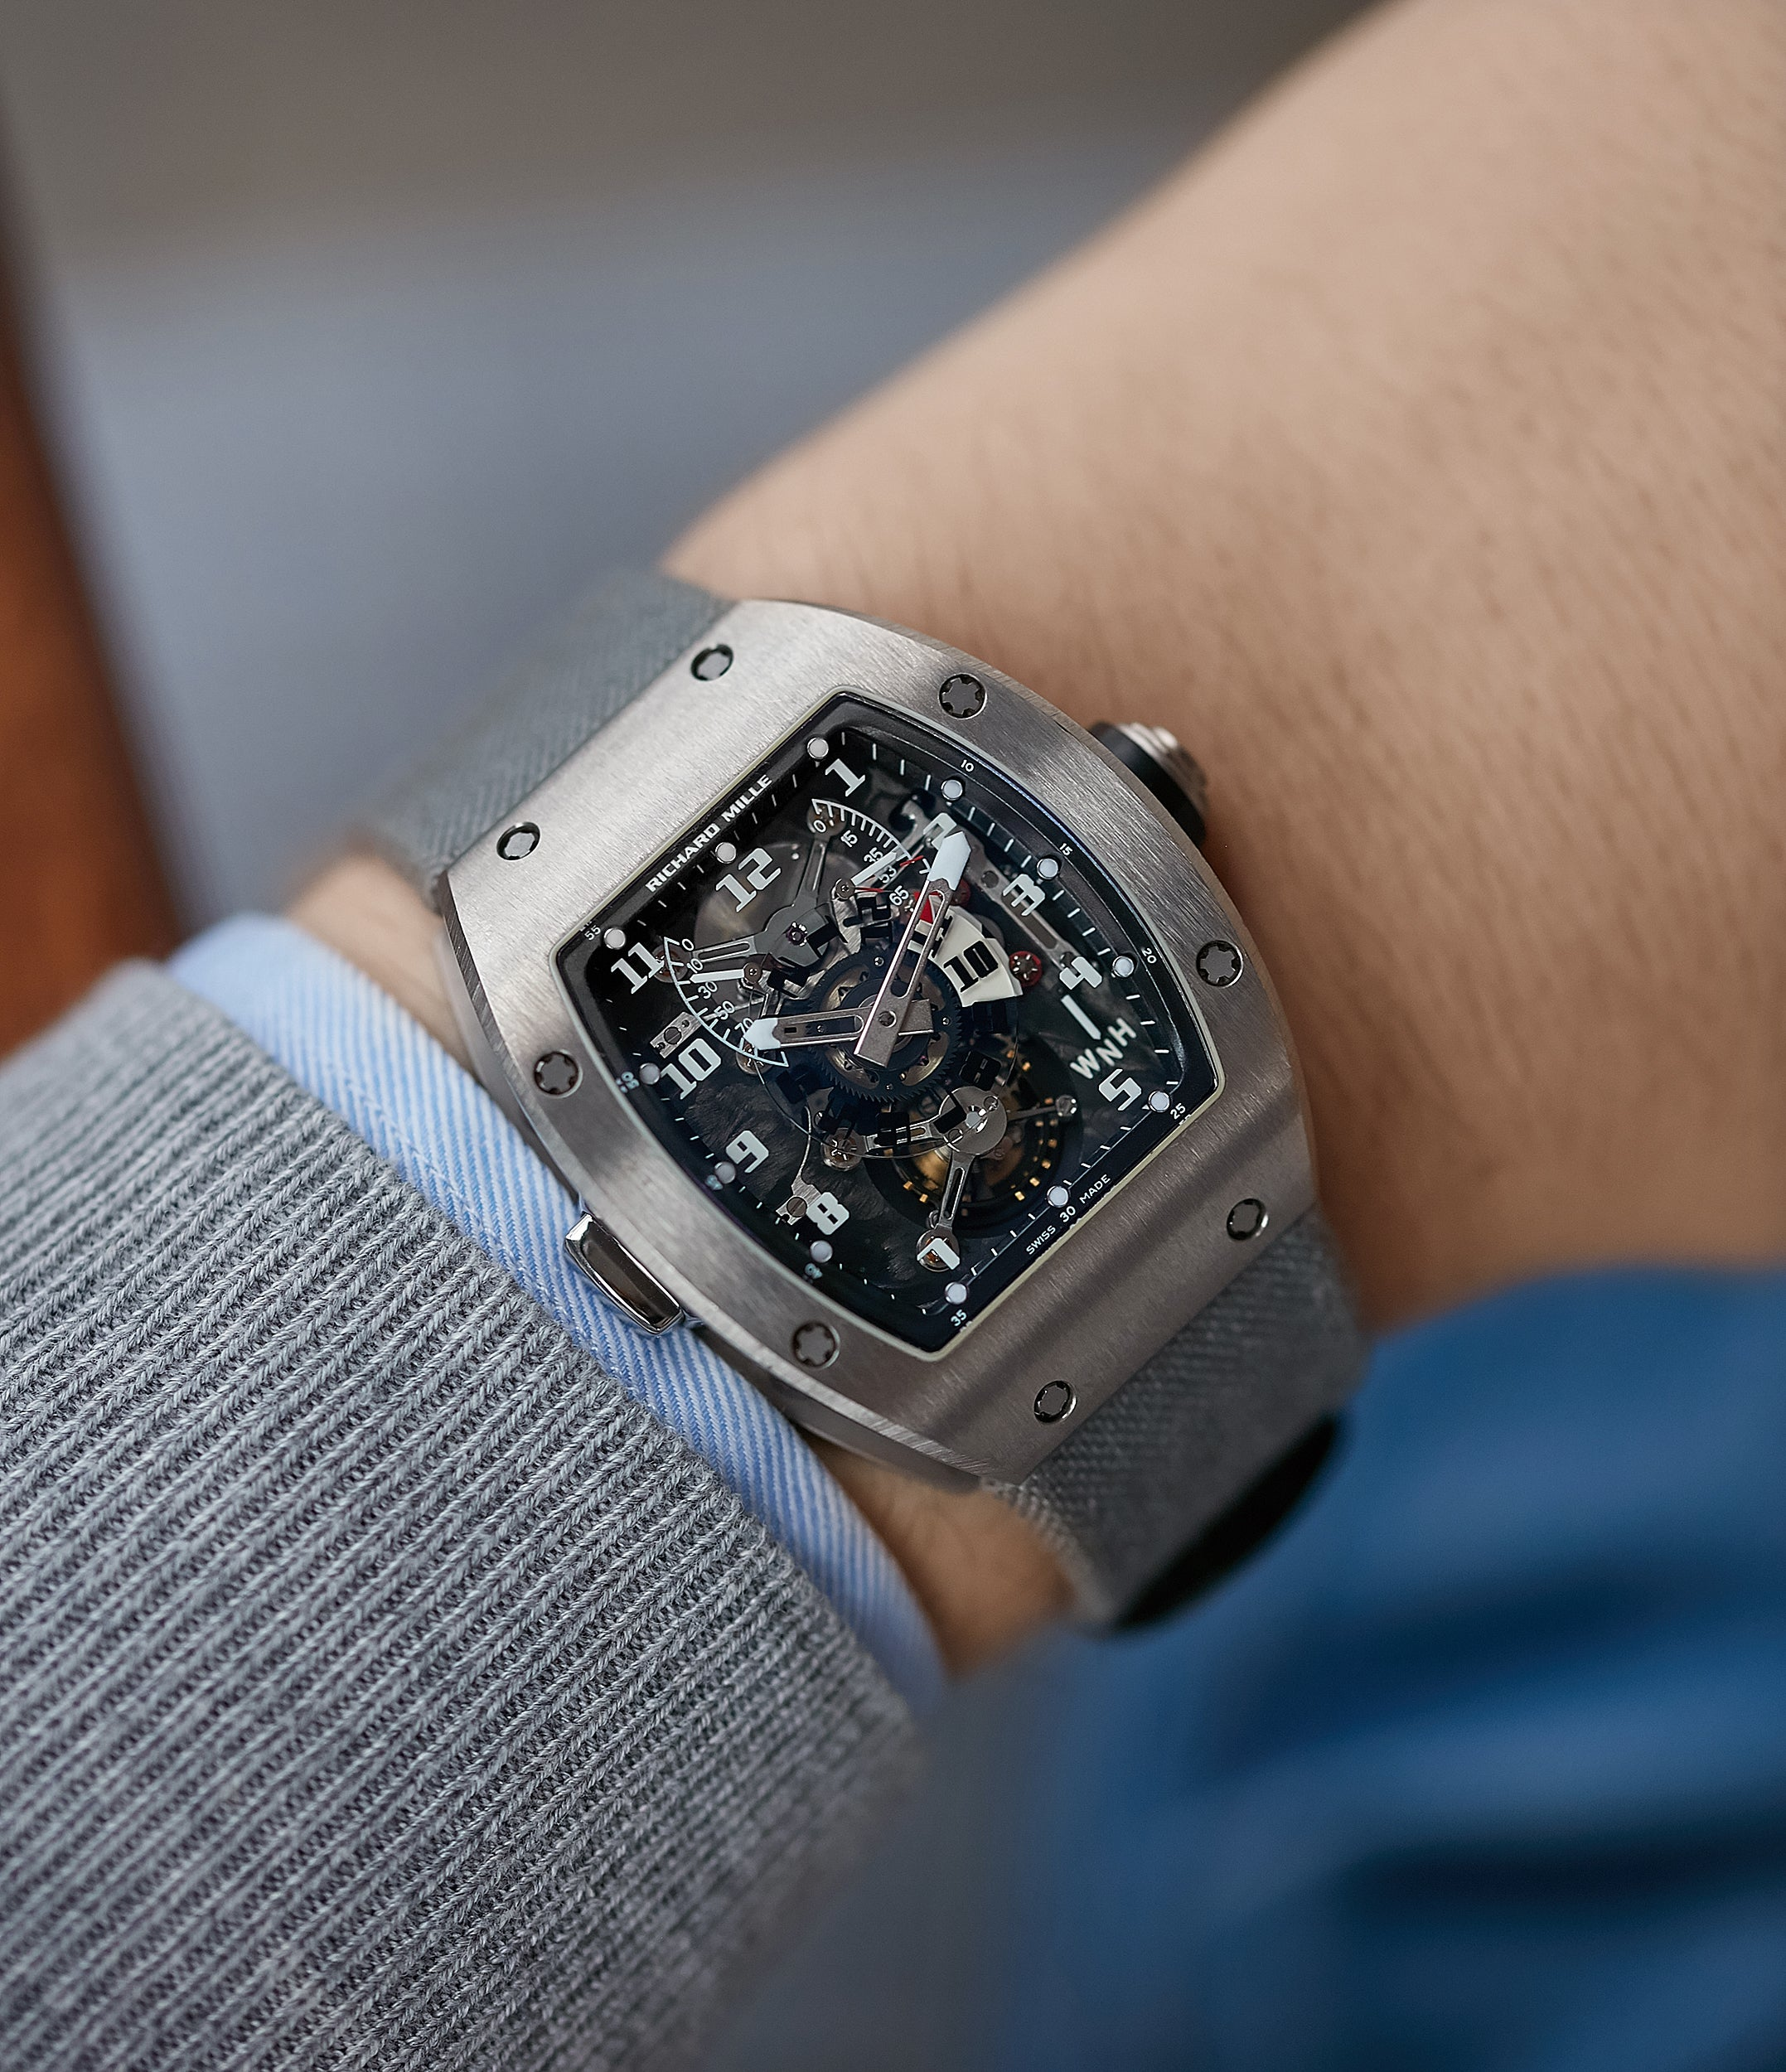 titanium wristwatch Richard Mille RM003-V2 tourbillon dual-time pre-owned rare independent watchmaker sports traveller watch for sale online at A Collected Man London UK specialist of rare watches